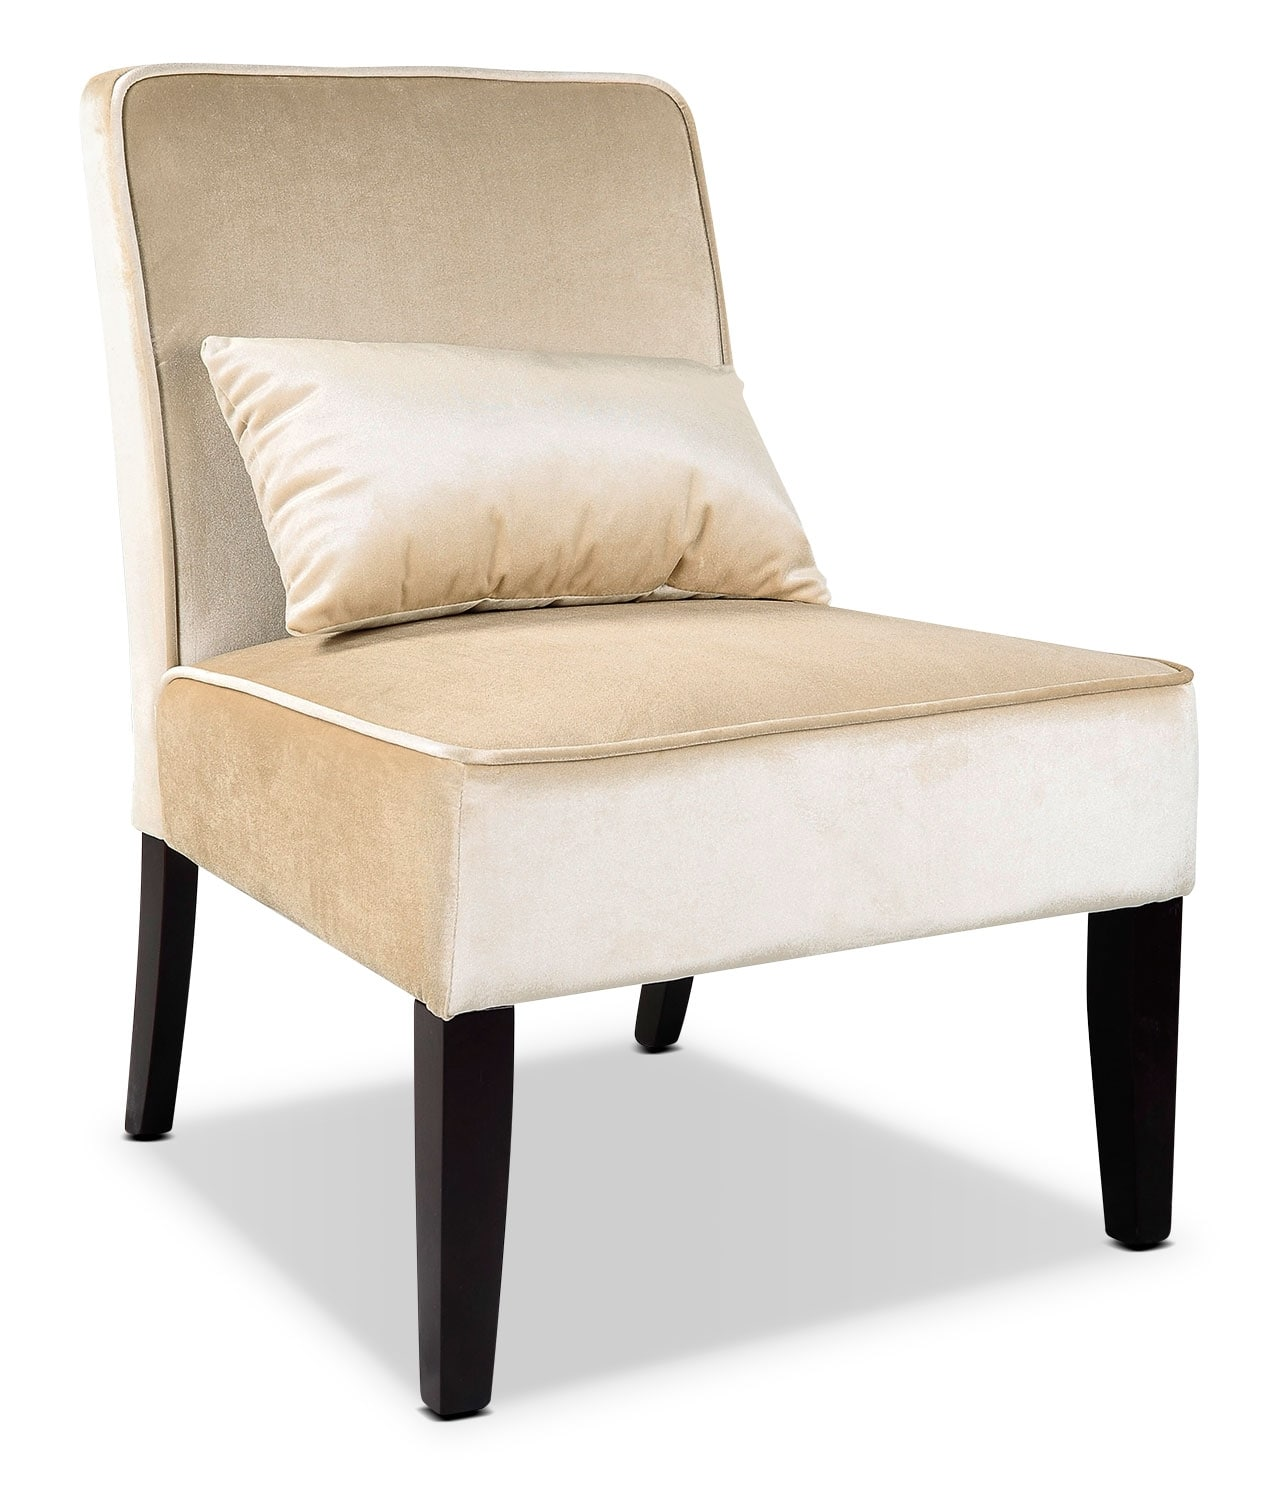 Cream Accent Chair Lad Velvet Fabric Accent Chair With Accent Cushion Cream